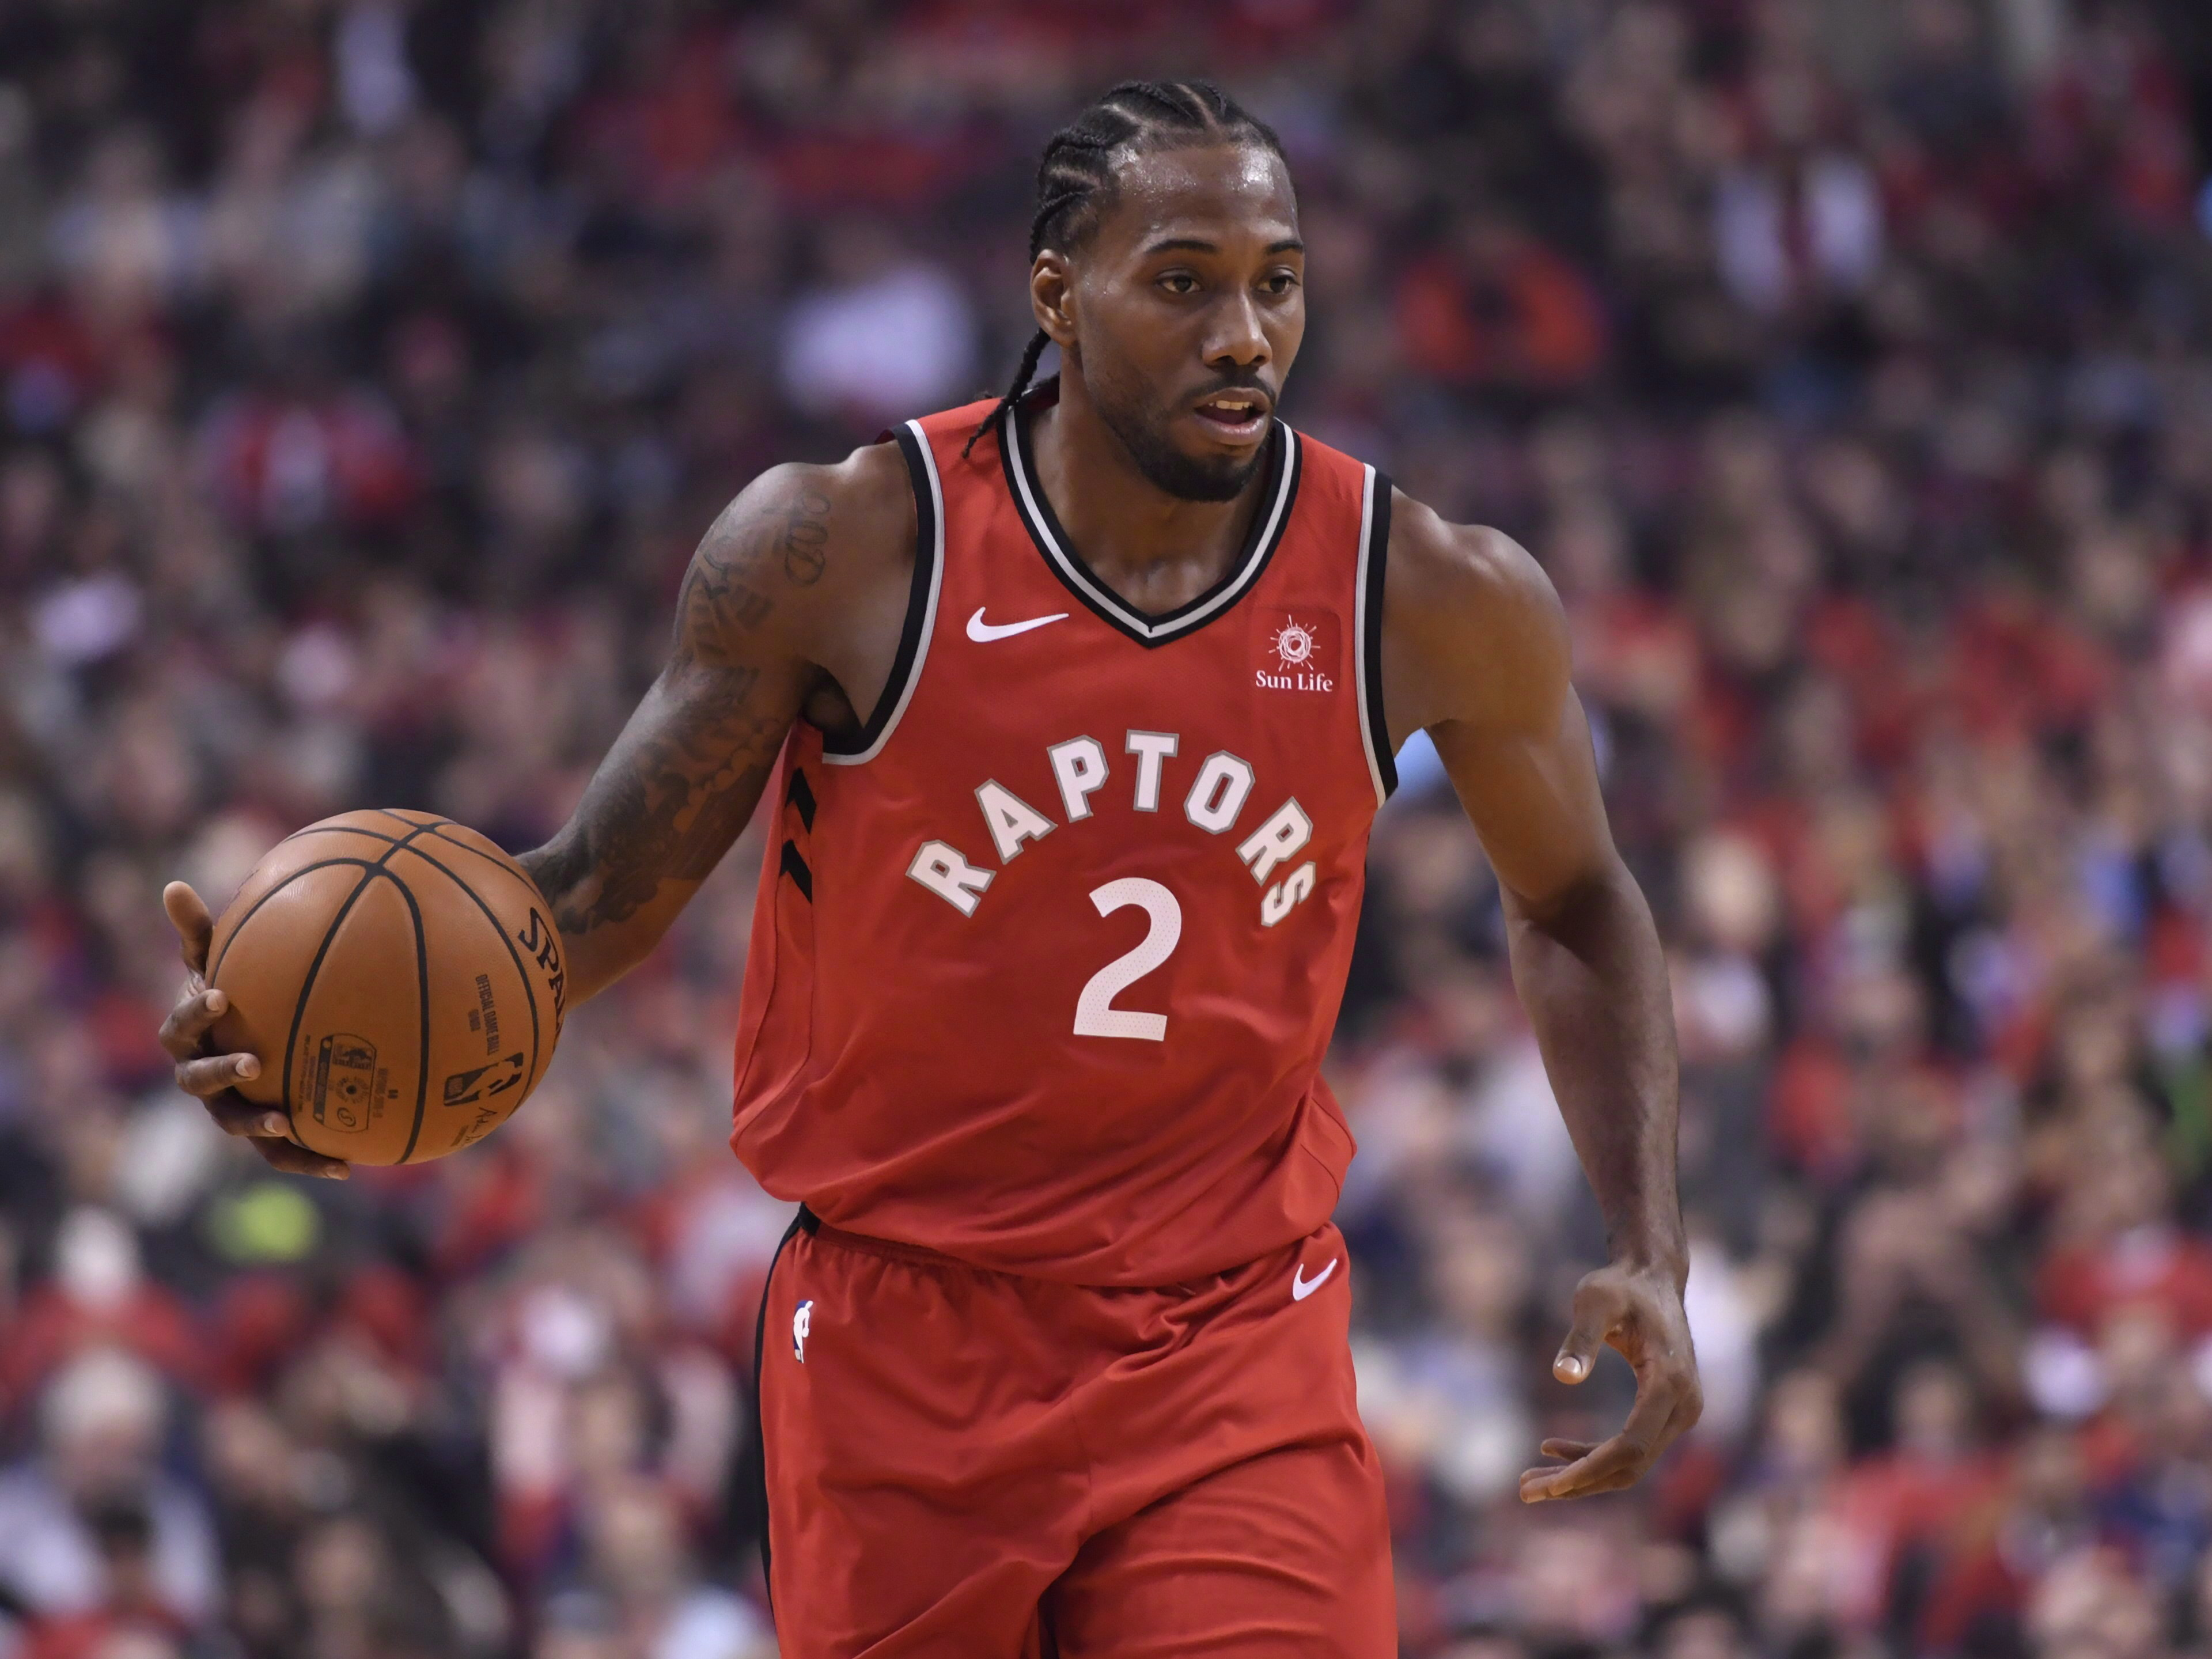 Raptors forward Kawhi Leonard voted in as all